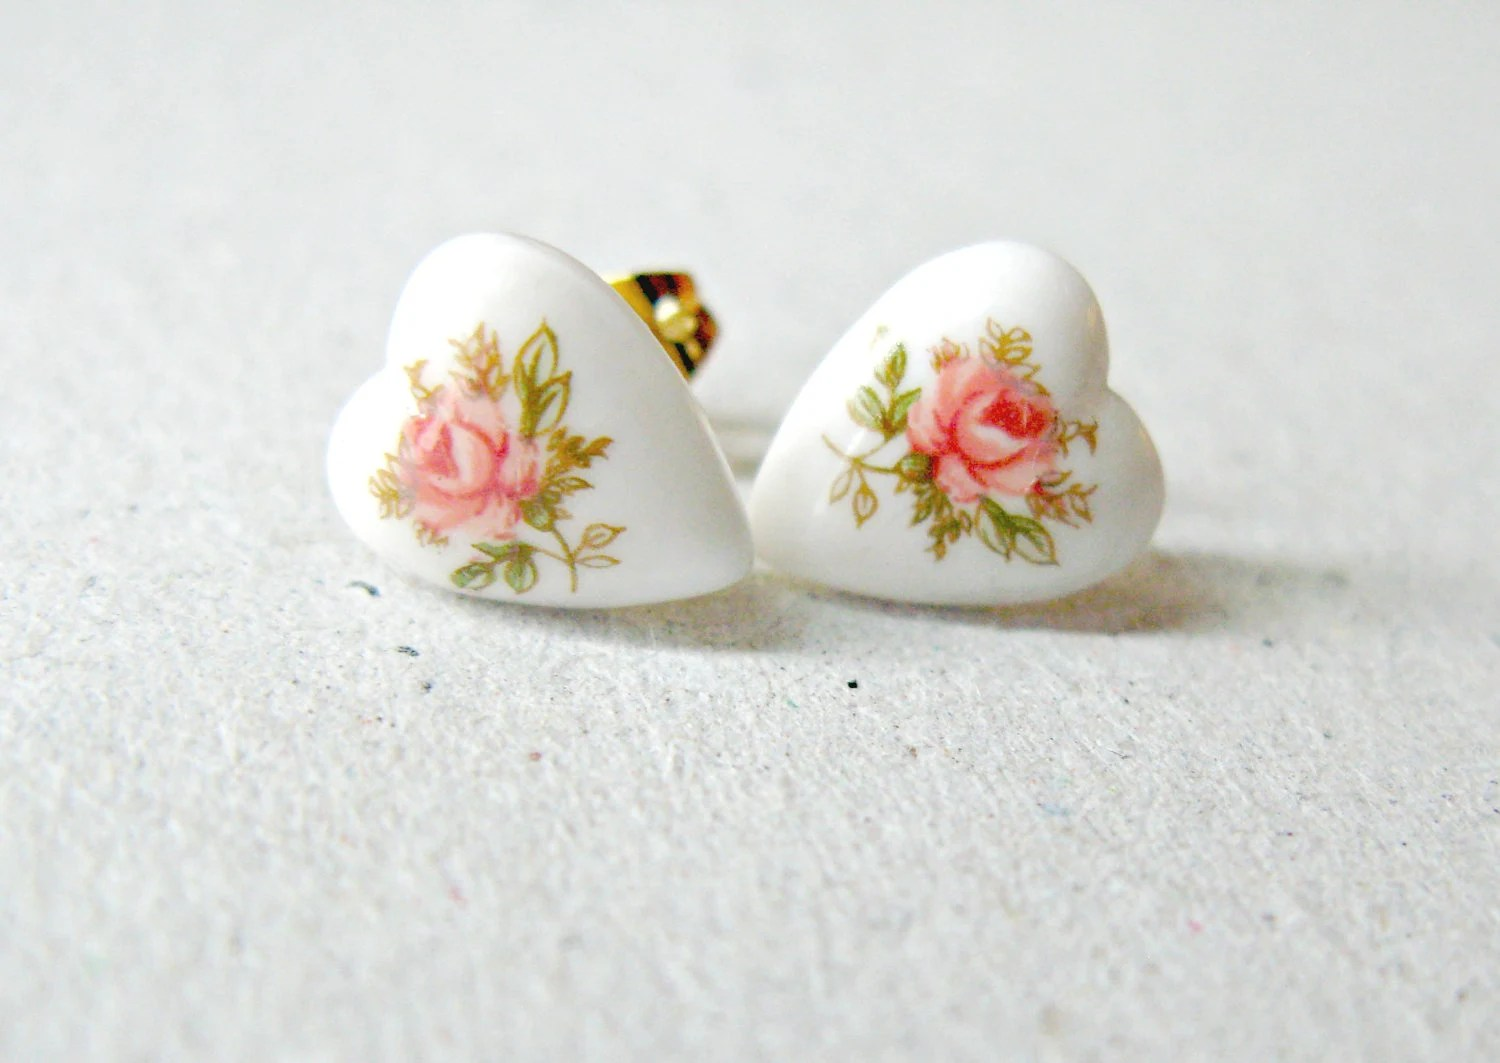 White Heart Post Earrings, Pink Rose Boquet Studs, Floral Heart Jewelry, Vintage Cabs, Gift For Her - raelwear